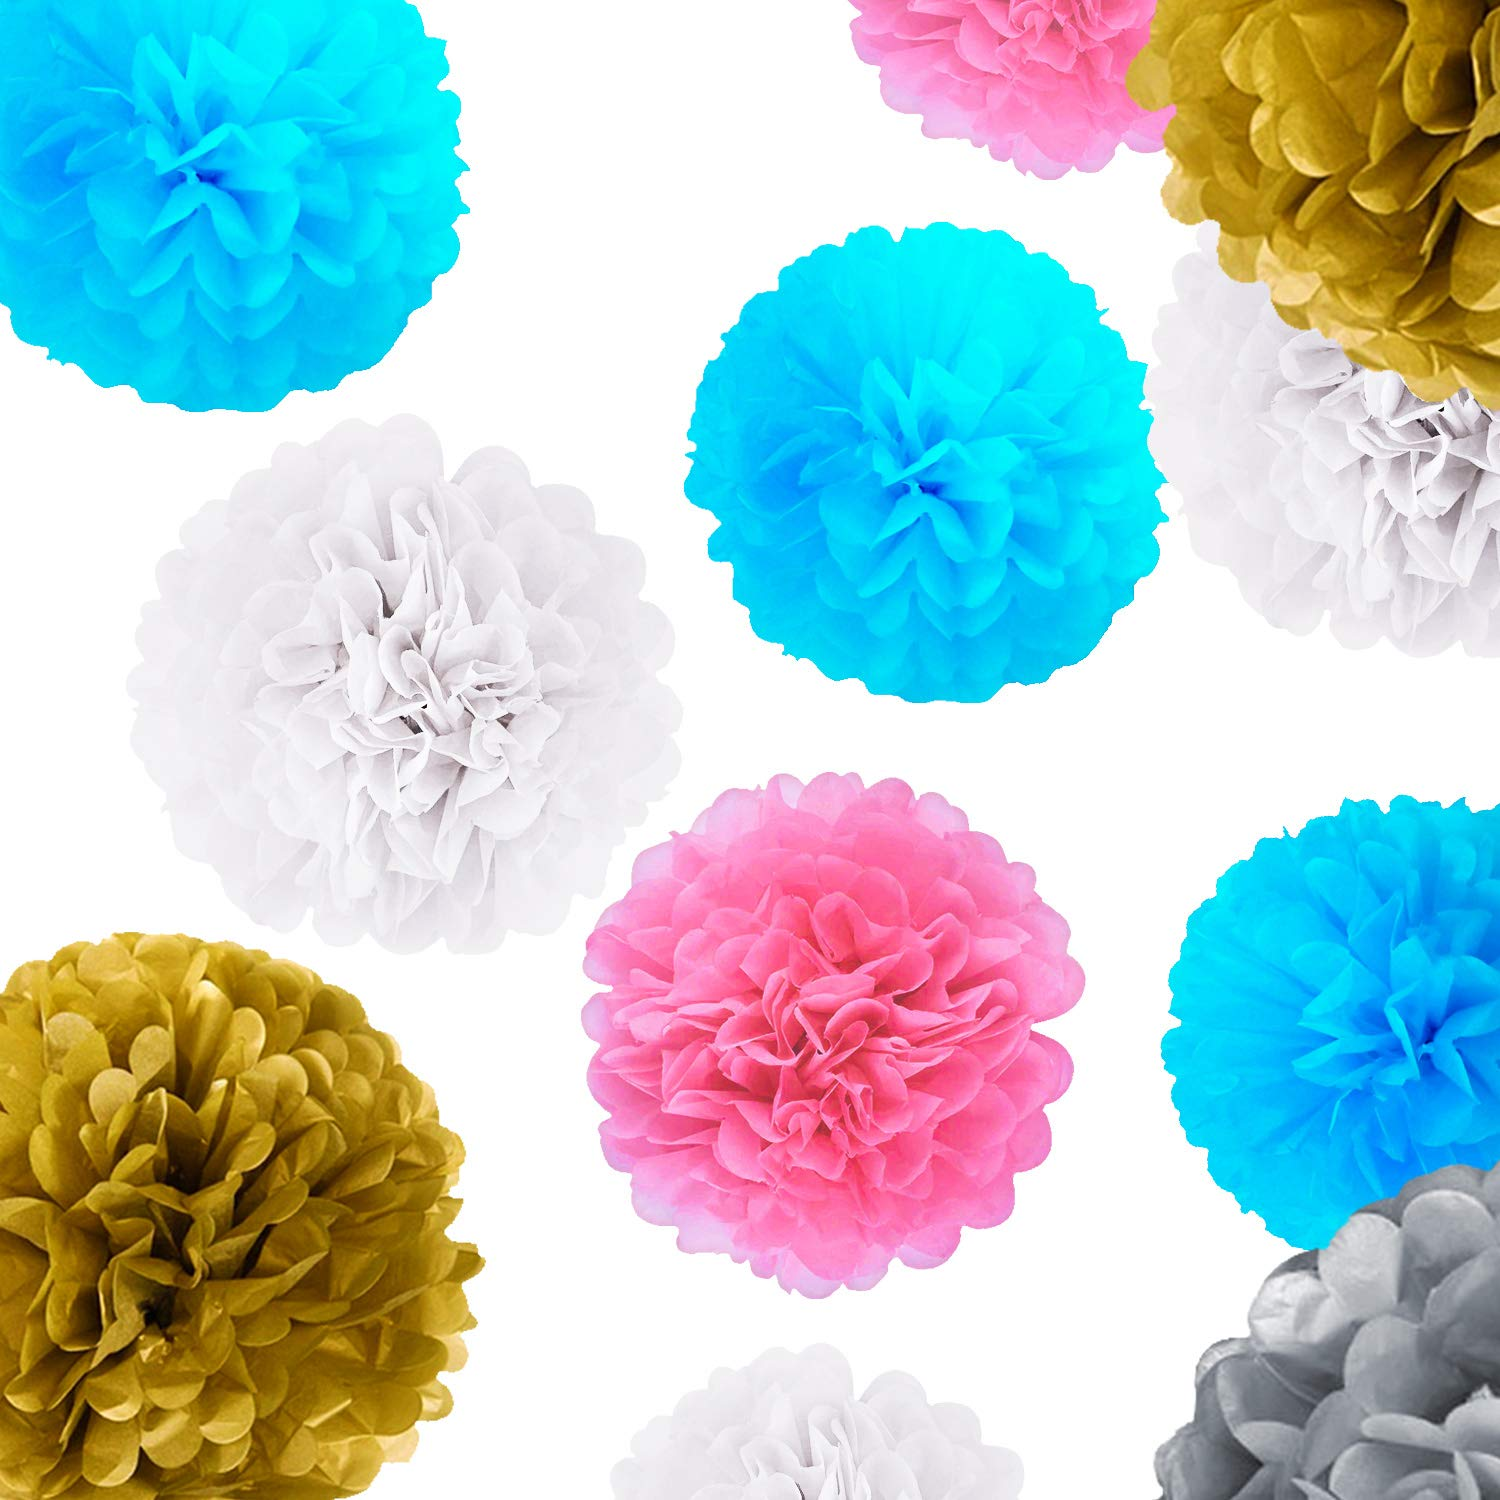 Blue 'N Blum Tissue Paper Pom Poms Decorations - Paper Flower - Party Decoration - Banner Happy Birthday for Party - Baby Shower - (12 pcs 12'' 10'' 8'' 6'') Gold Silver White Light Blue Light Pink by BLUE 'N BLUM